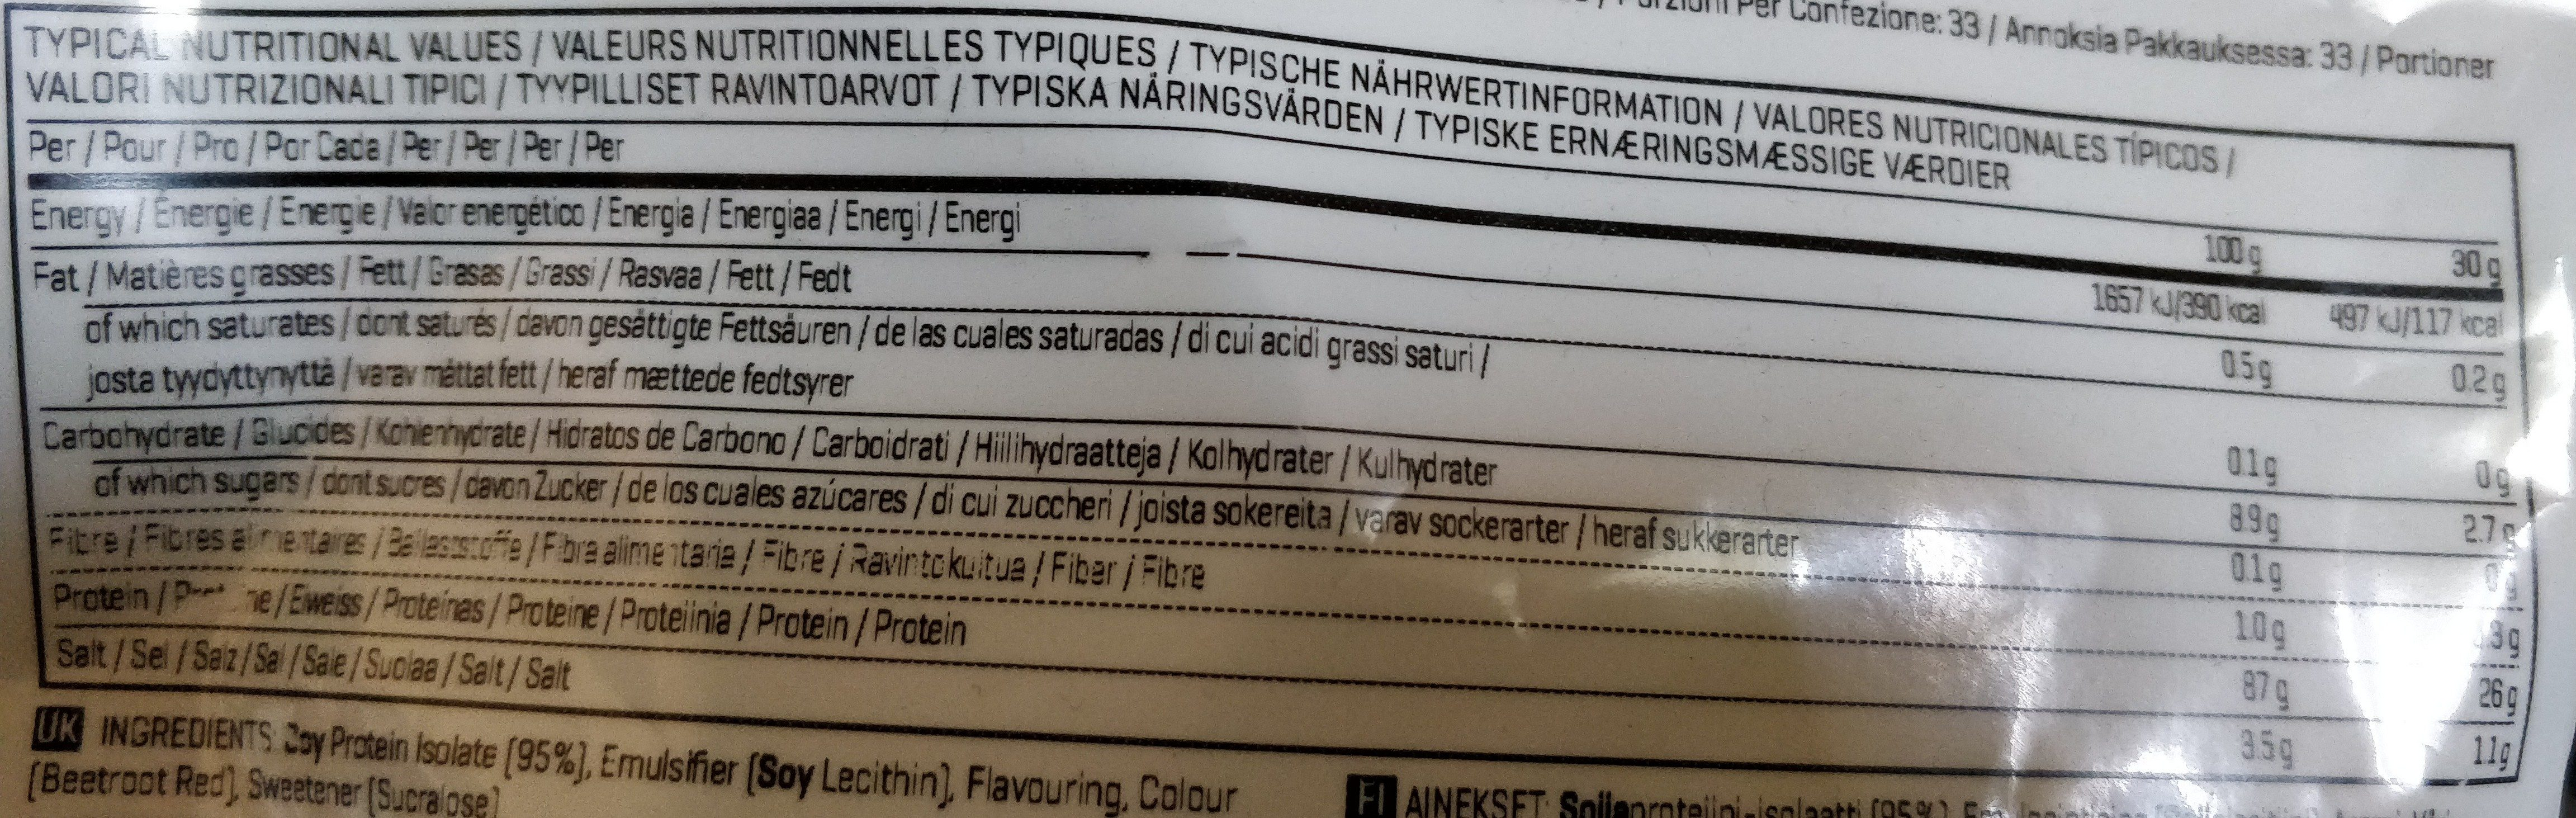 soy protein isolate - Nutrition facts